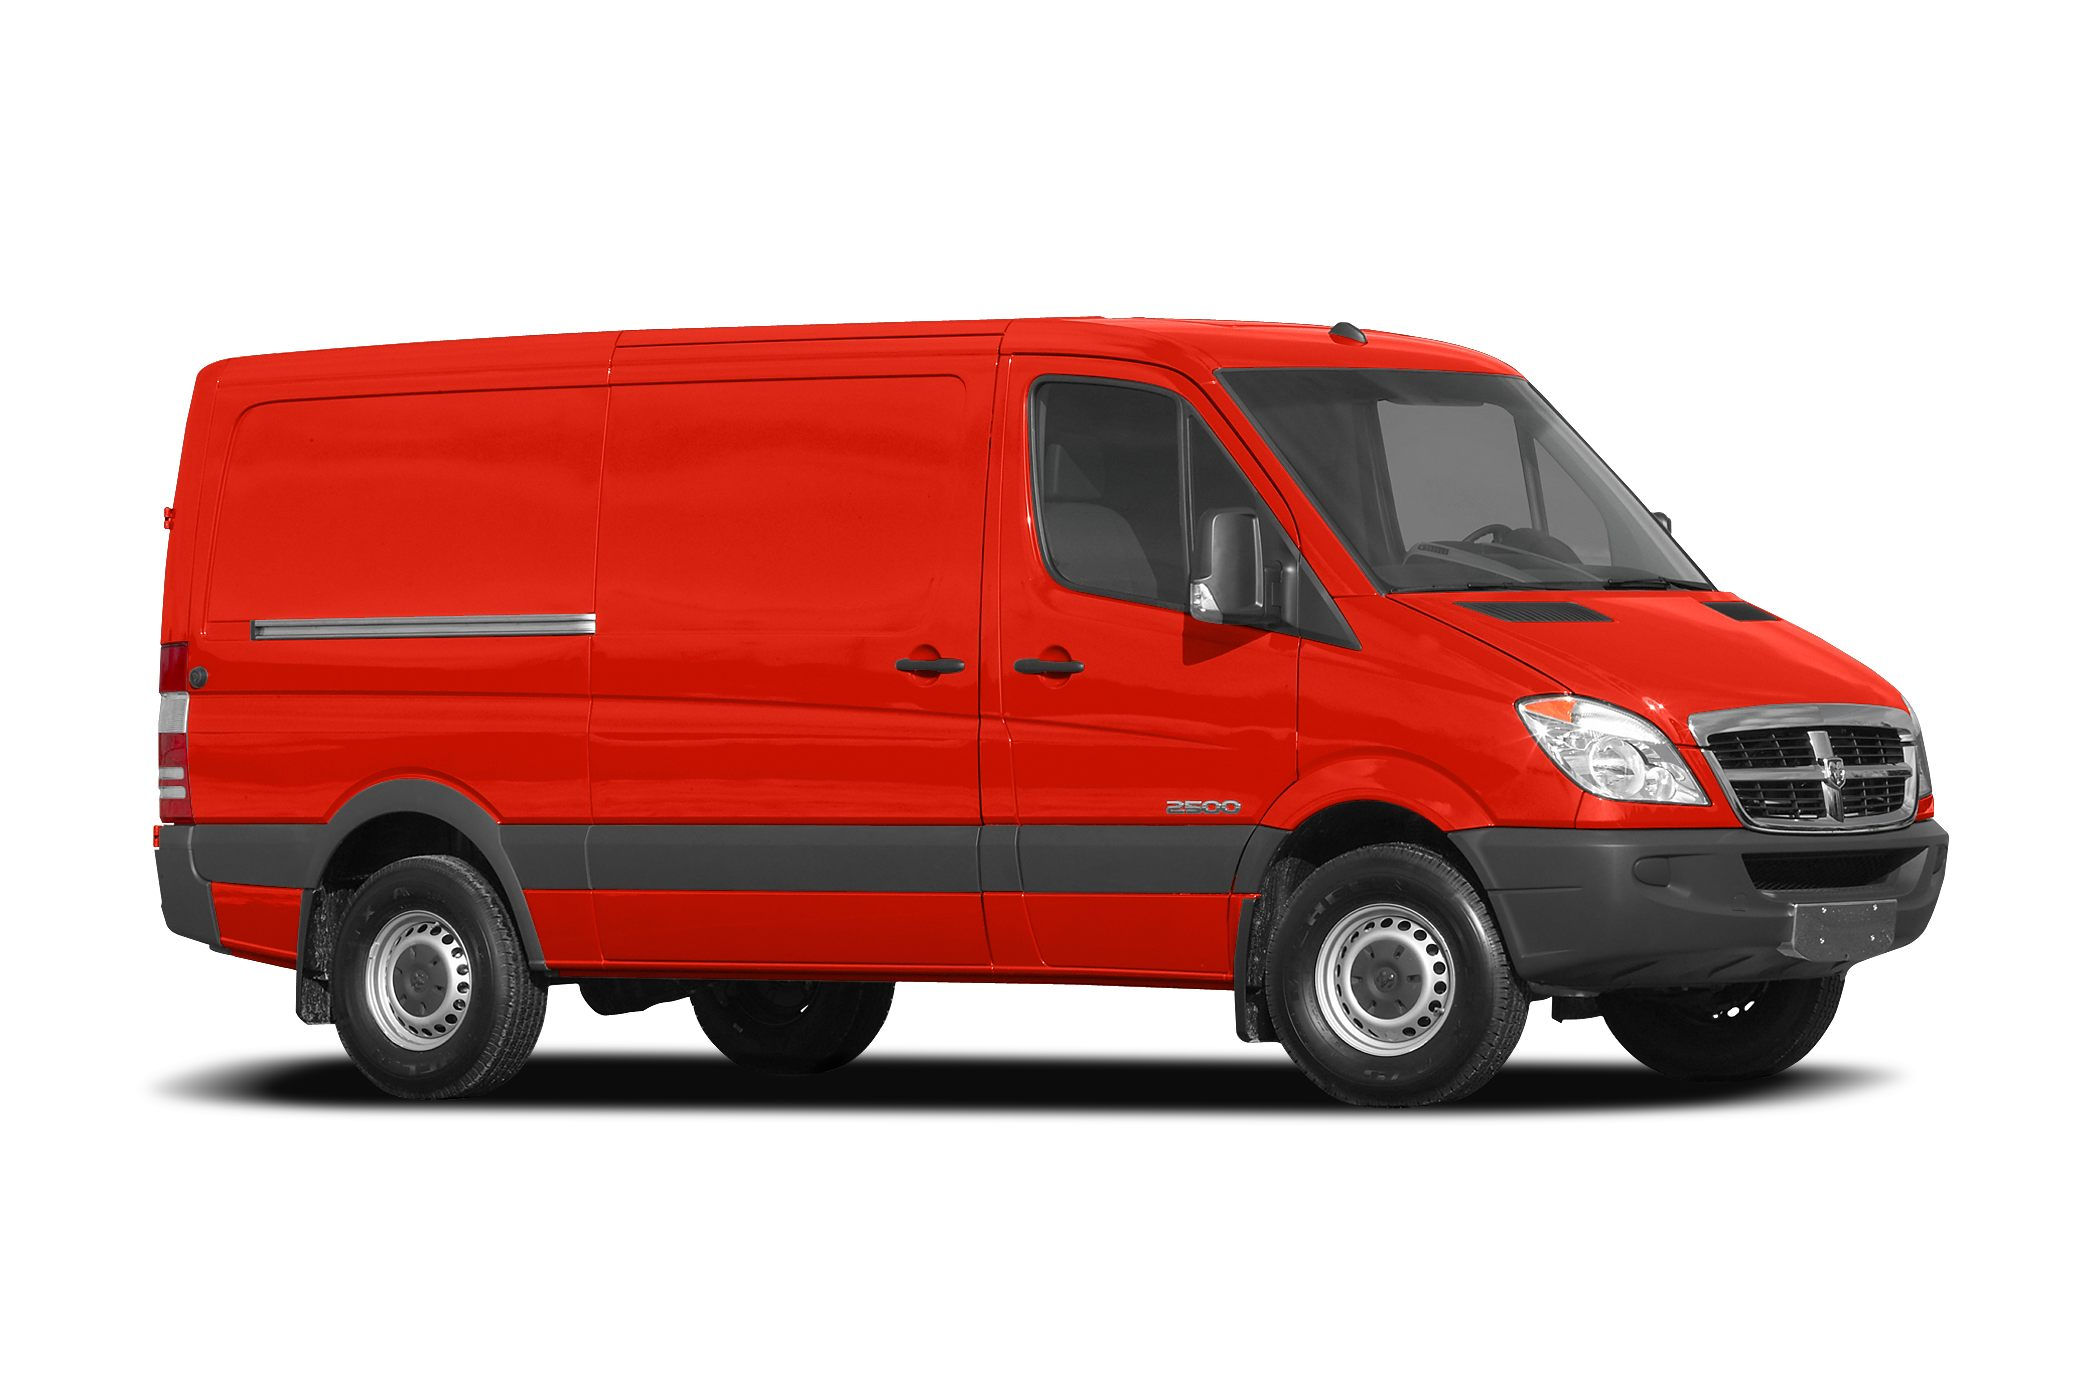 2008 Dodge Sprinter 2500 144 WB Cargo Bonham Chrysler is honored to present a wonderful example of